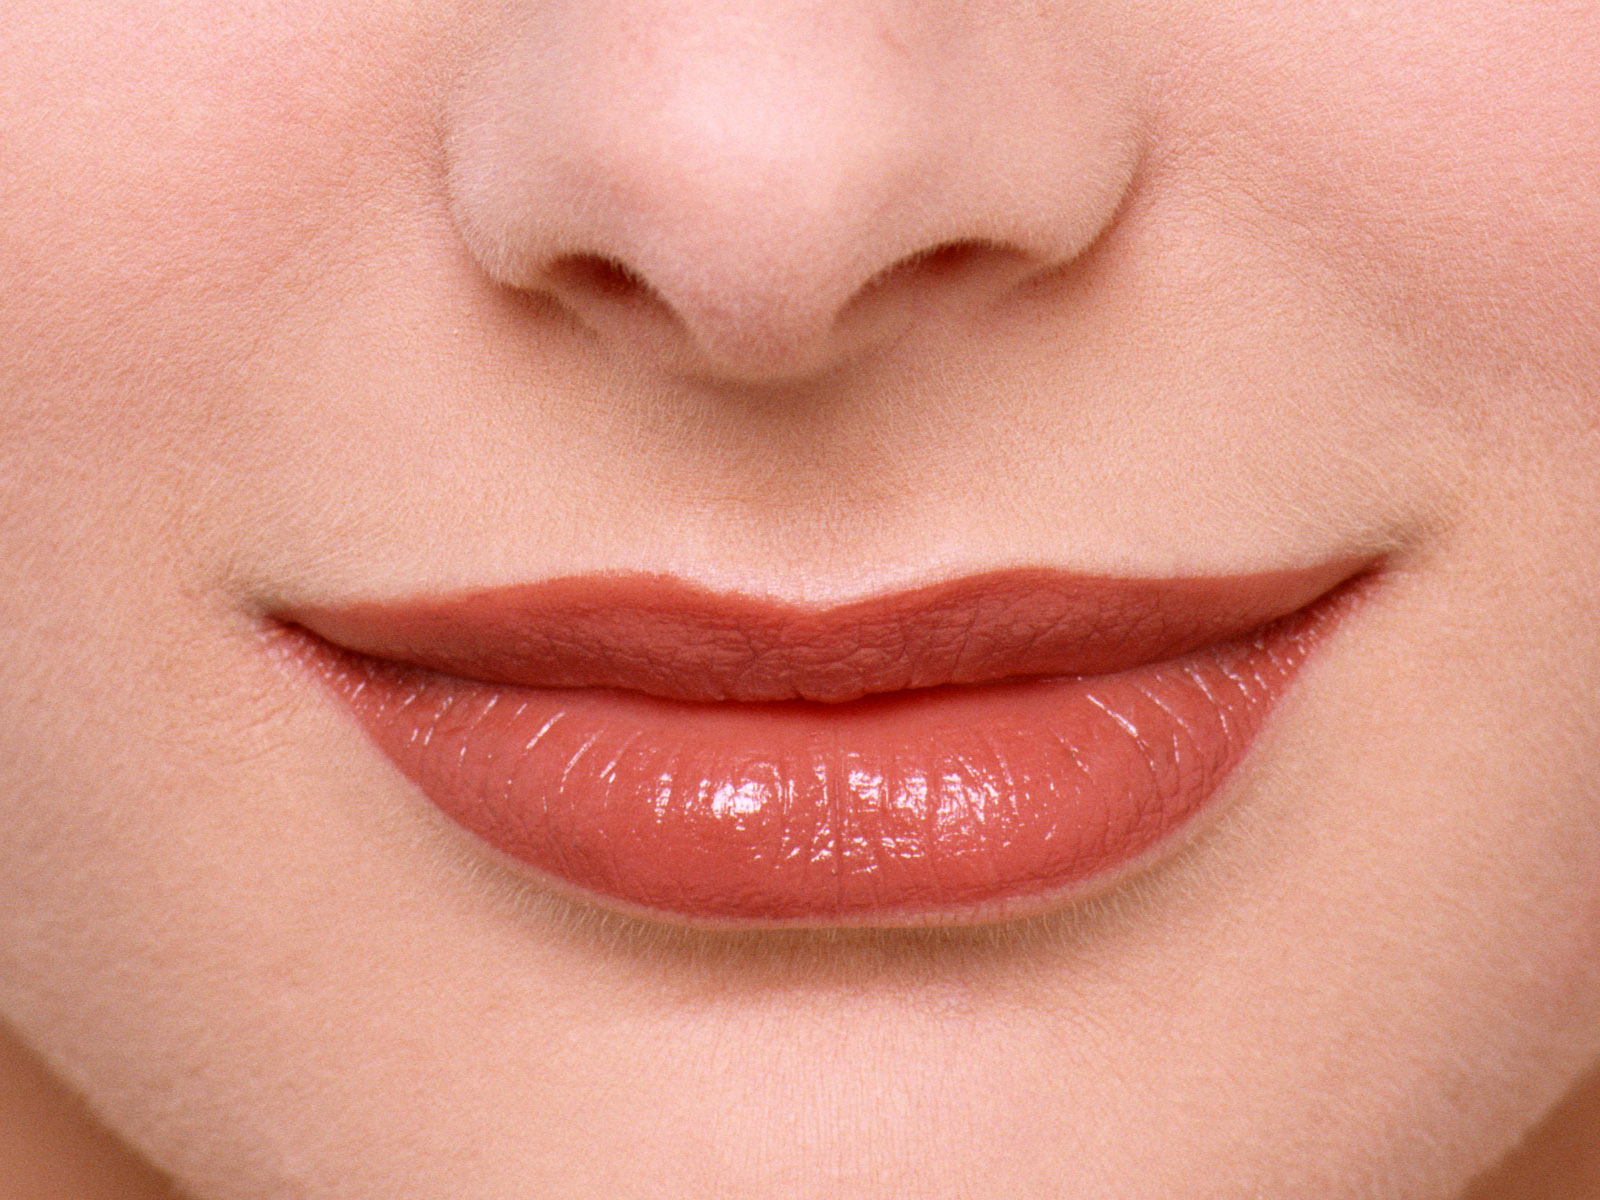 Female lips album 3154